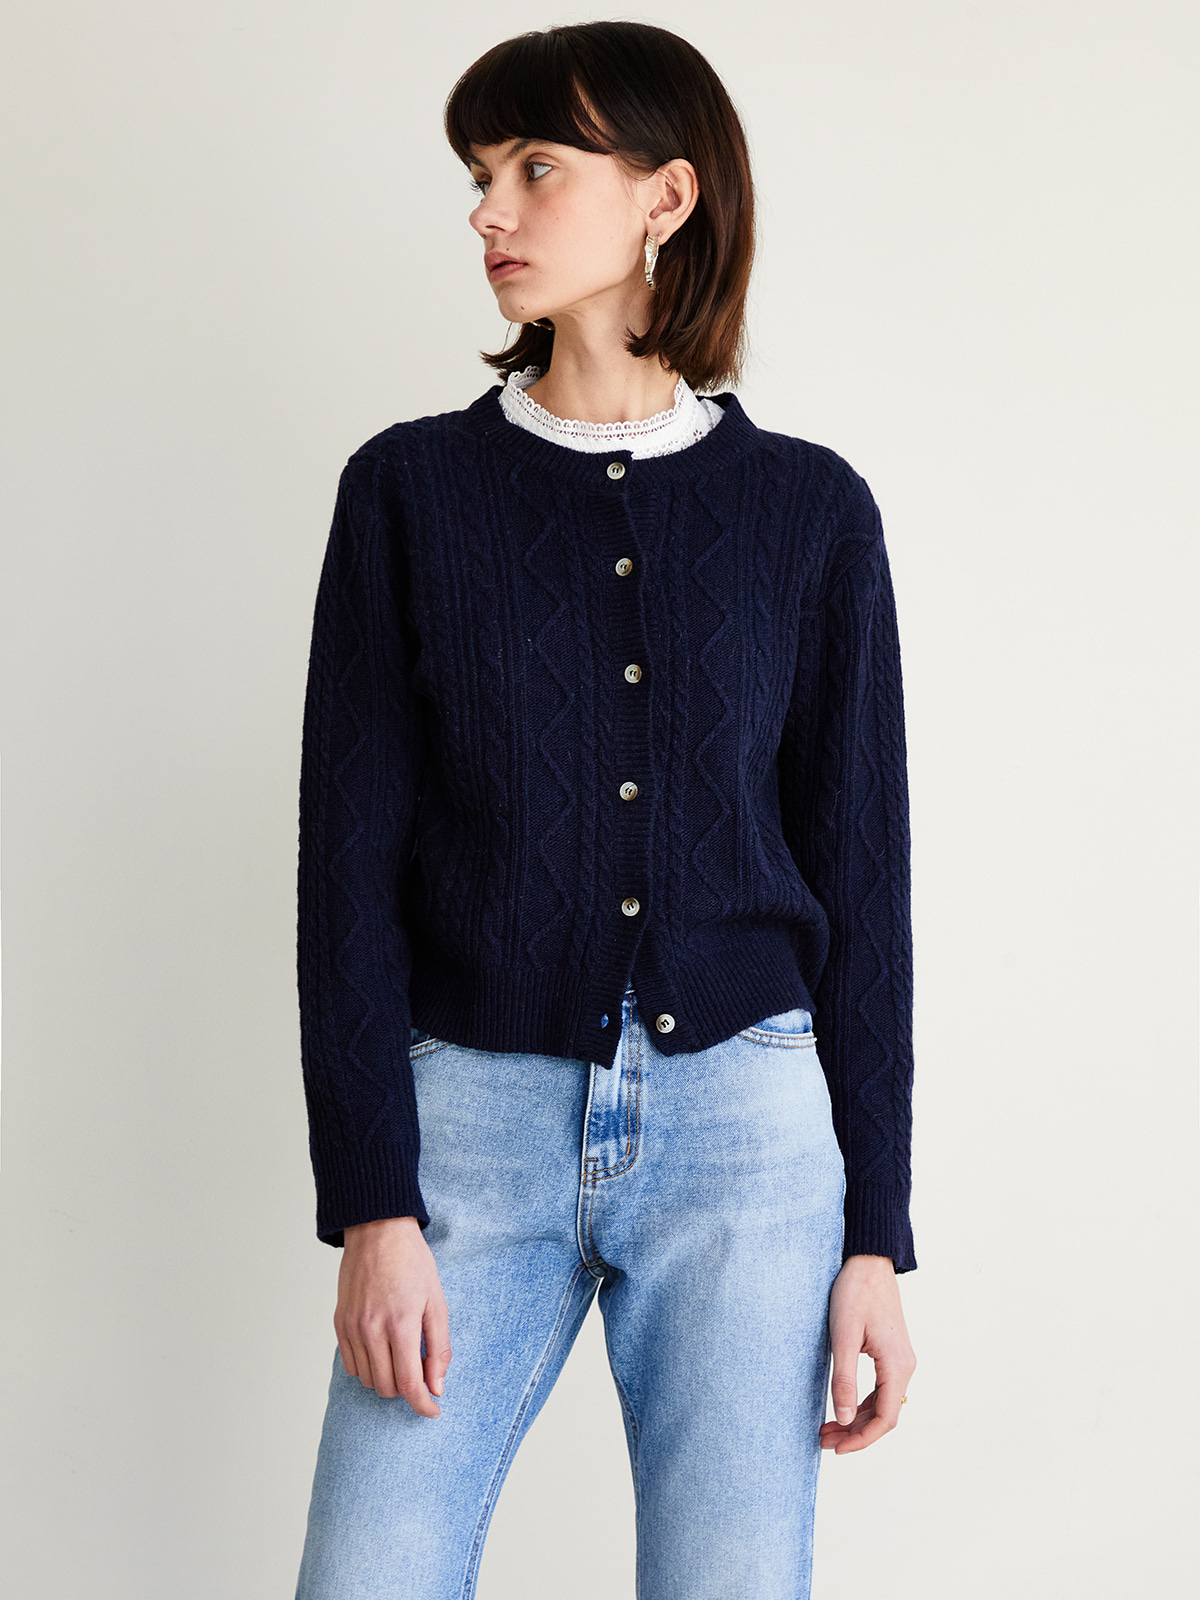 Julie Cable Cardigan_Navy